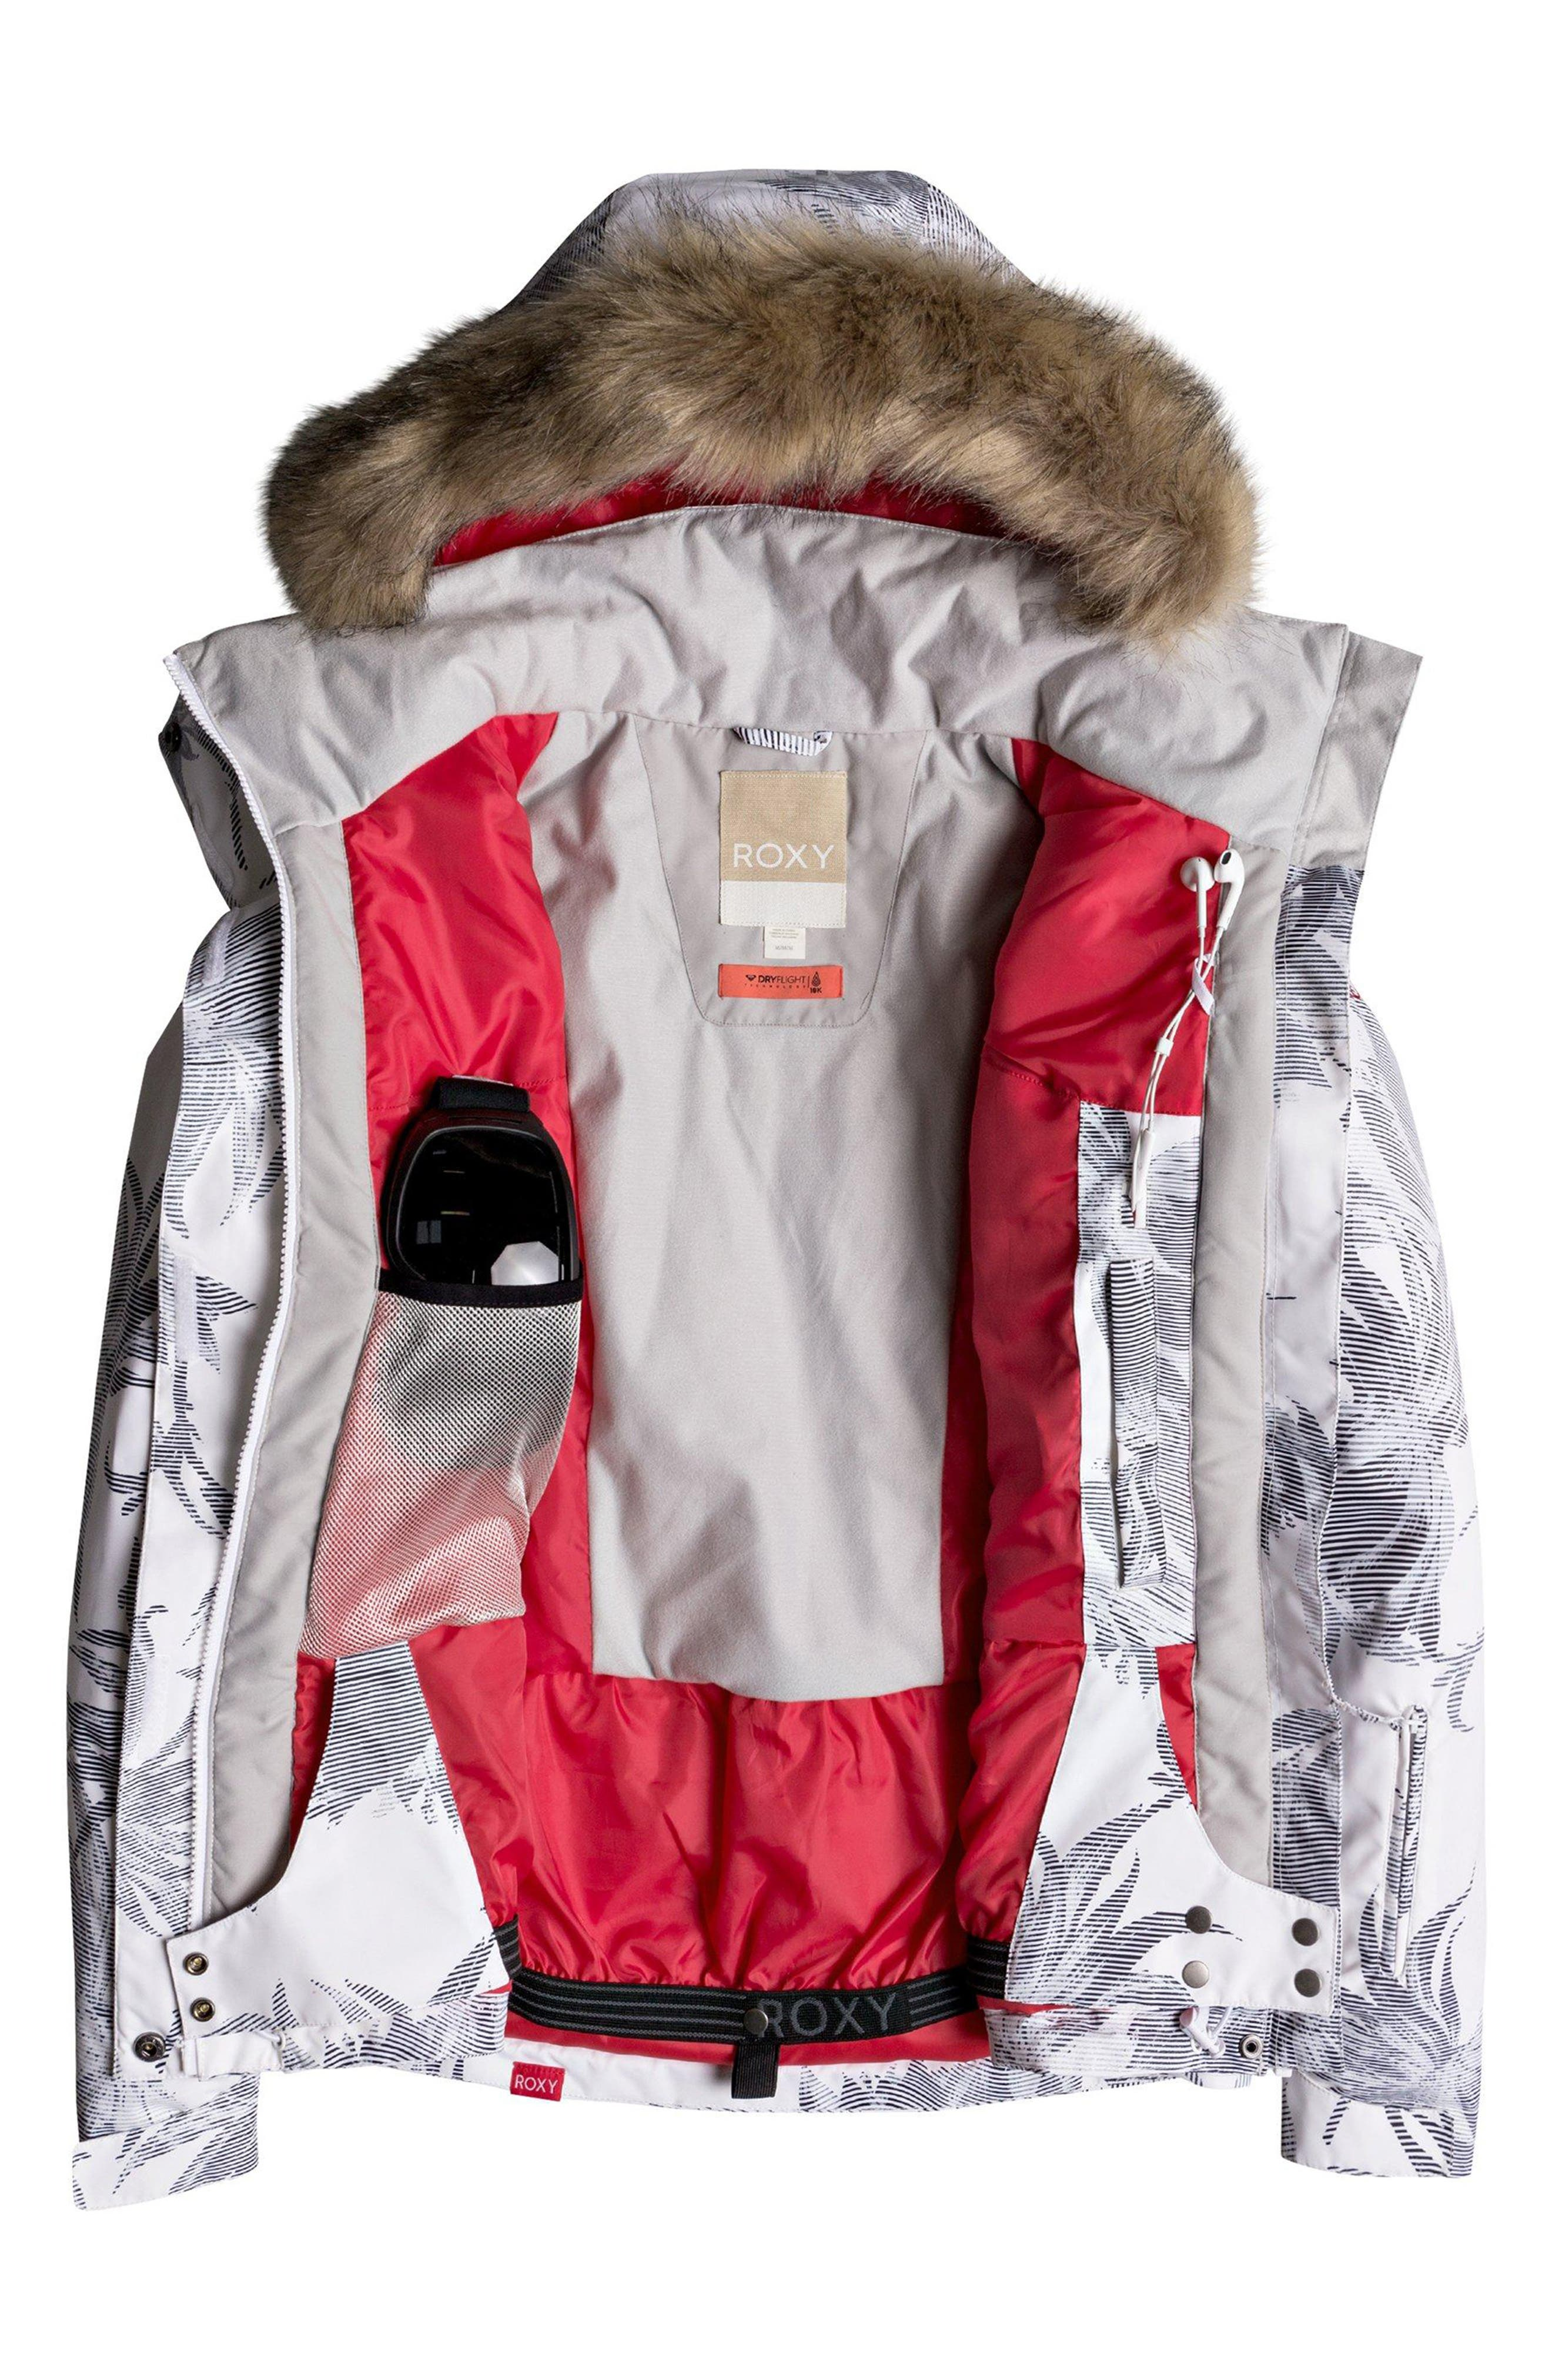 Jet Ski Slim Fit Waterproof WarmFlight<sup>®</sup> Insulated Snow Jacket with Faux Fur Trim,                             Alternate thumbnail 3, color,                             BRIGHT WHITE/ SWELL FLOWERS